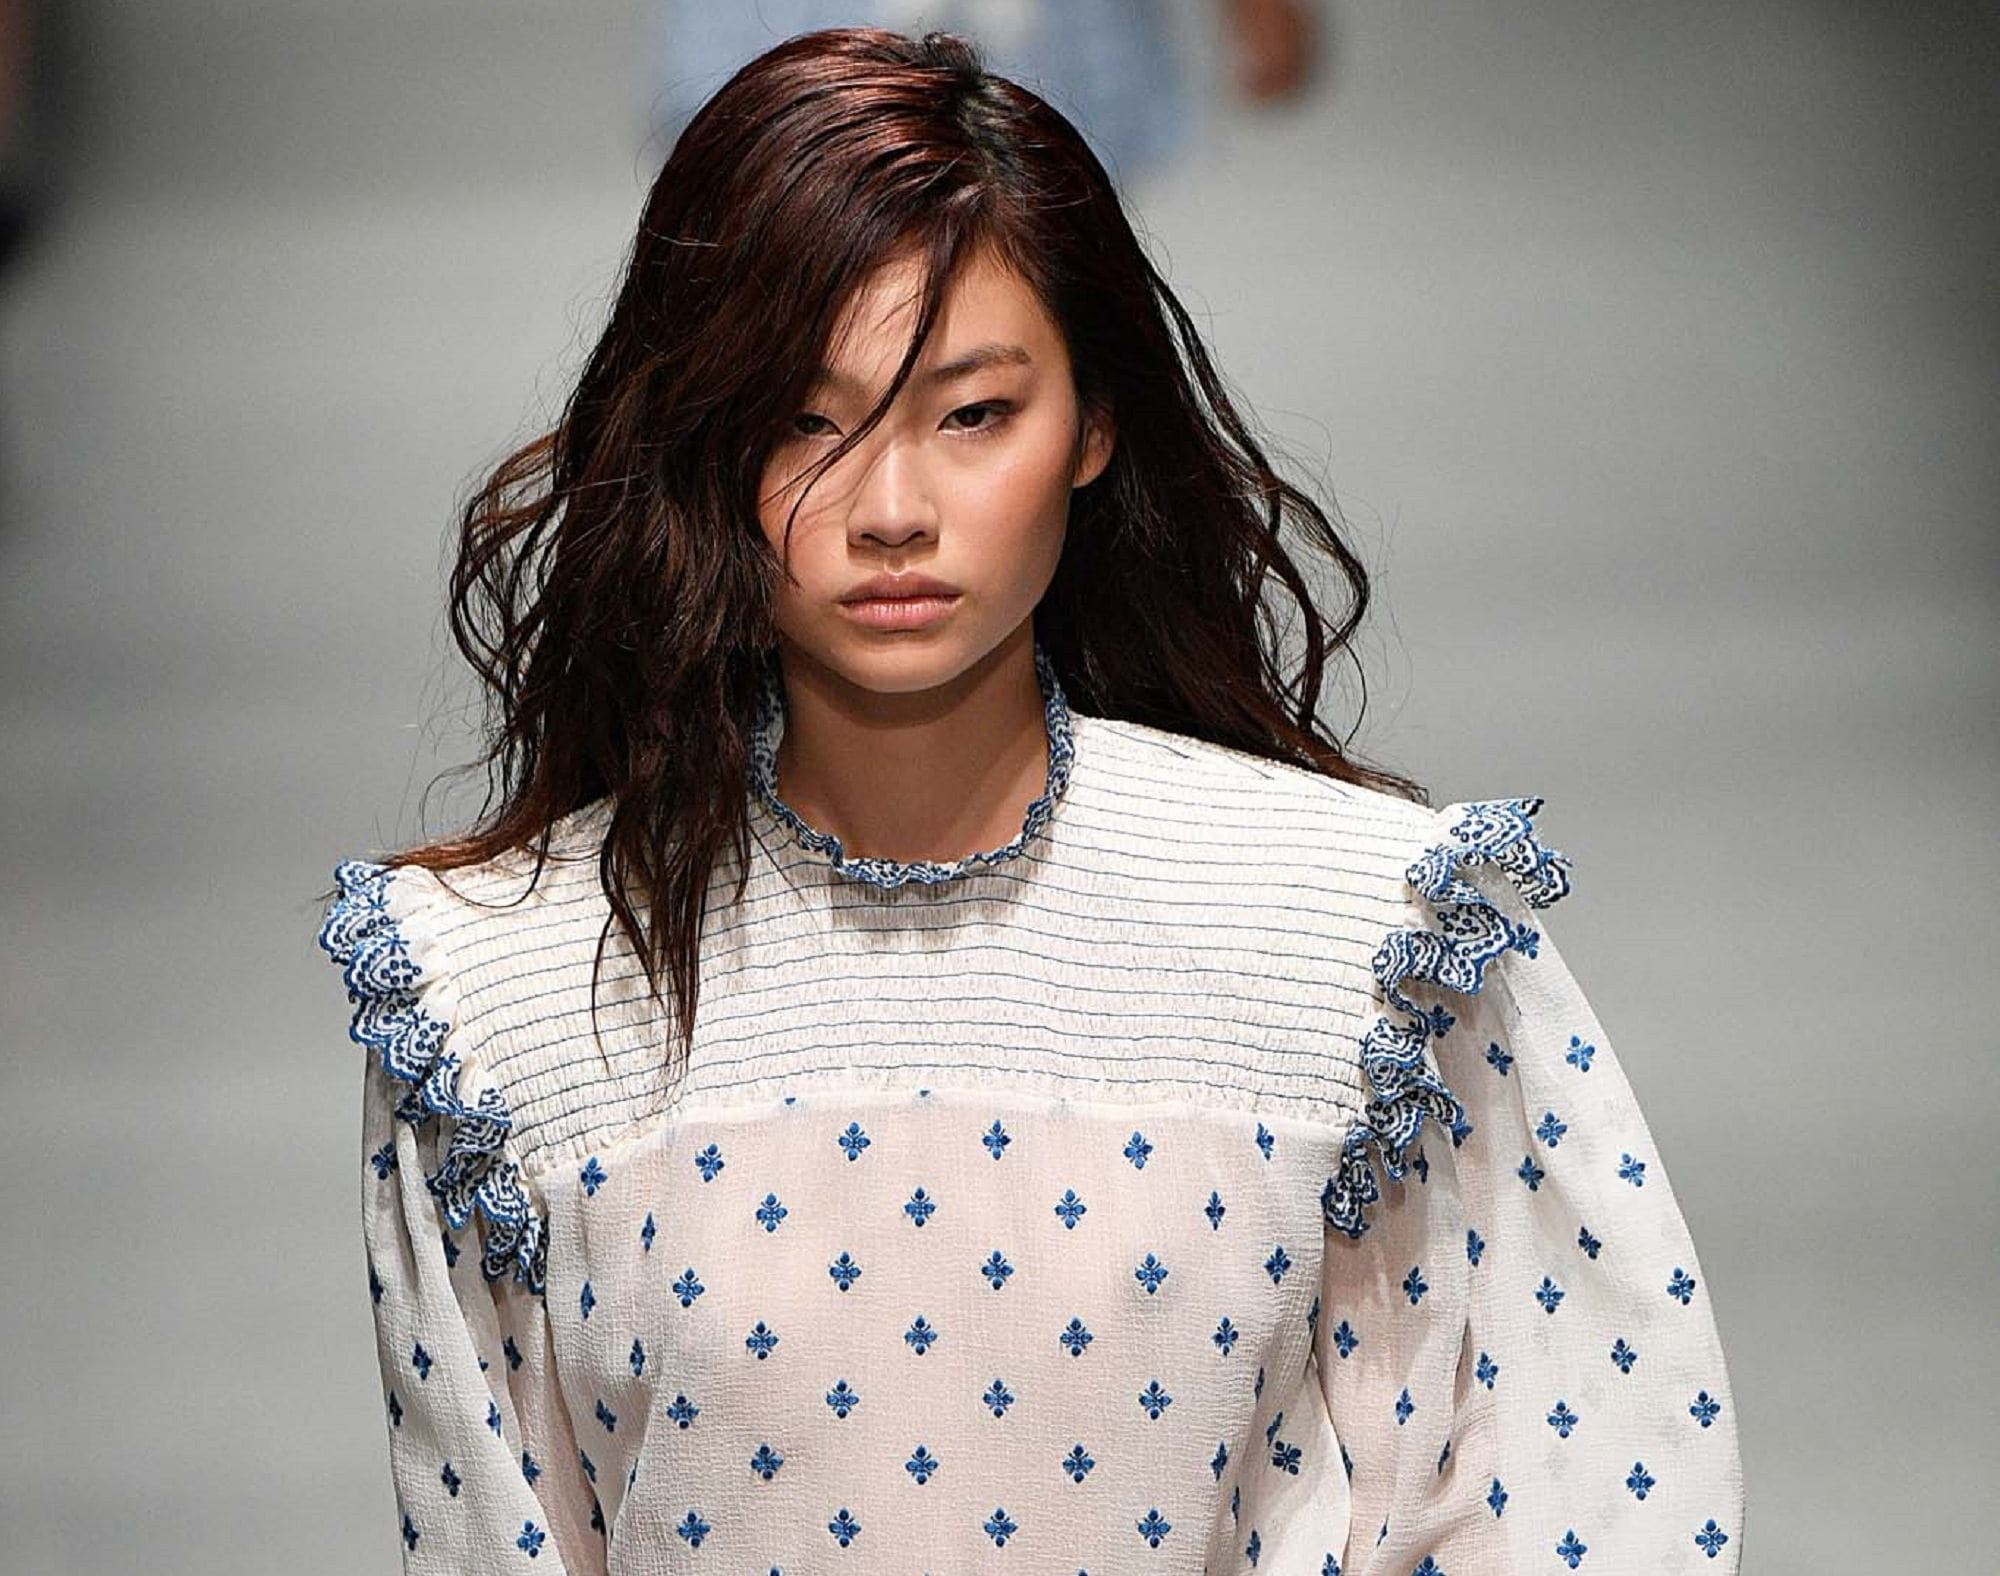 Dark brown hair color: Closeup shot of an Asian woman with deep chocolate hair wearing a white polka dotted dress walking in a fashion show